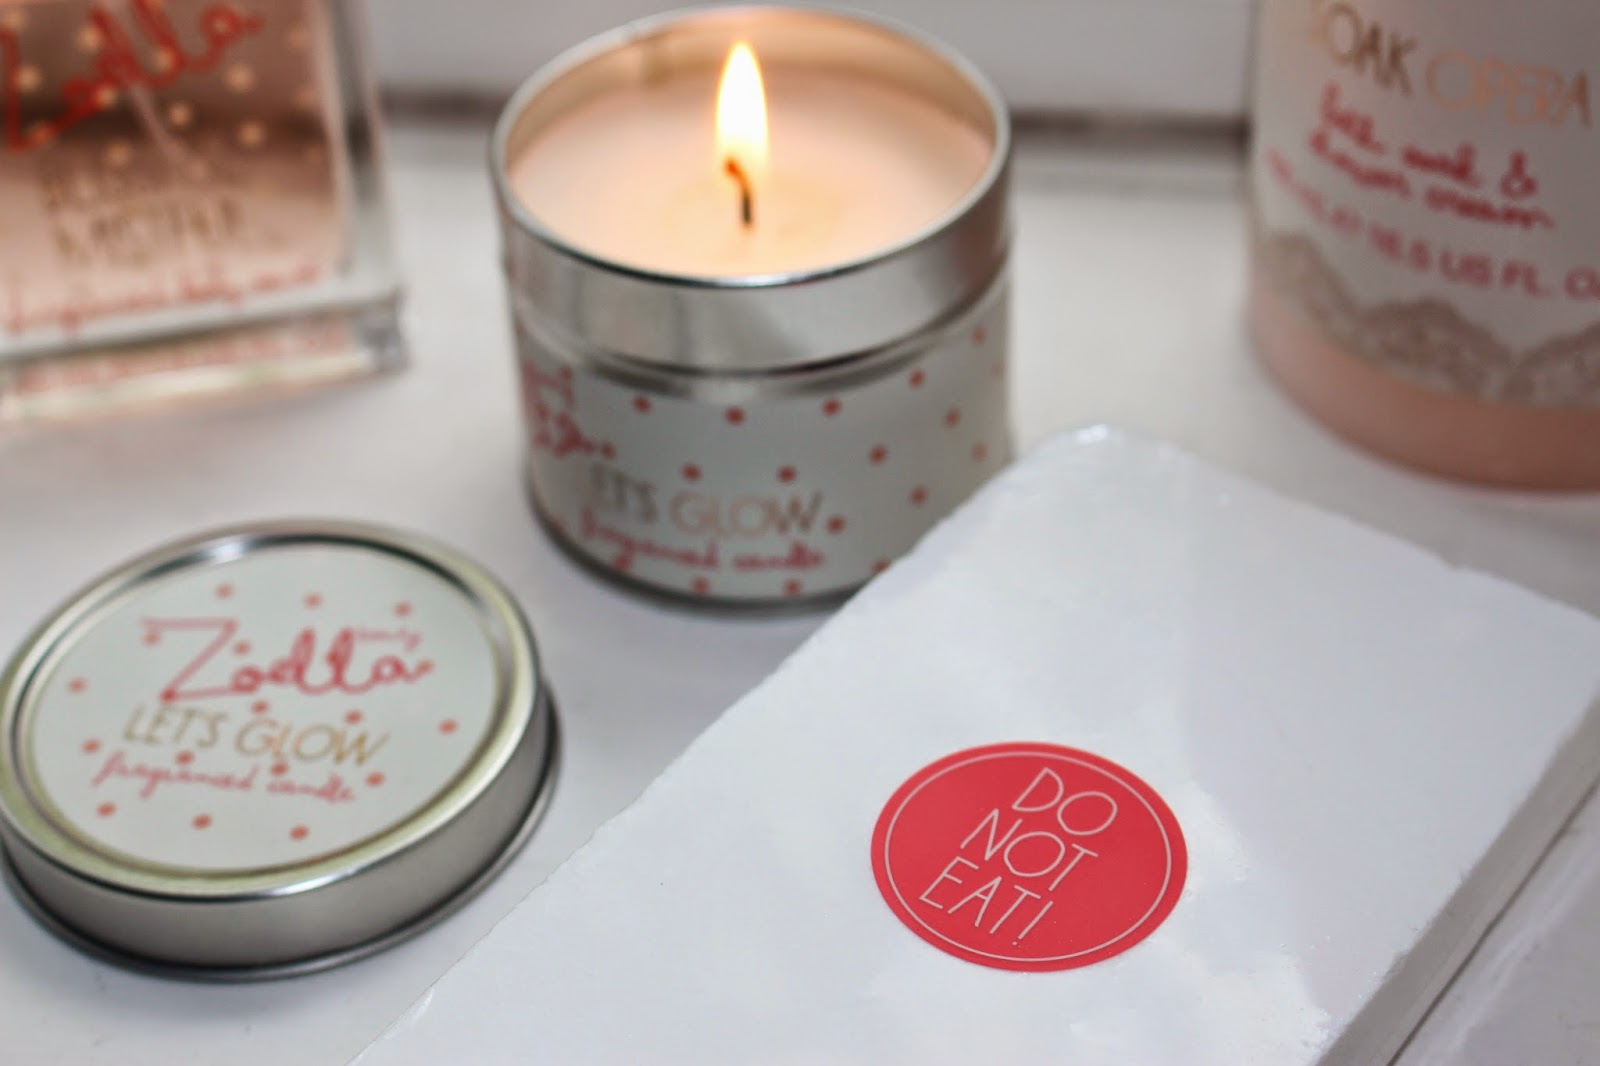 Zoella Beauty Products